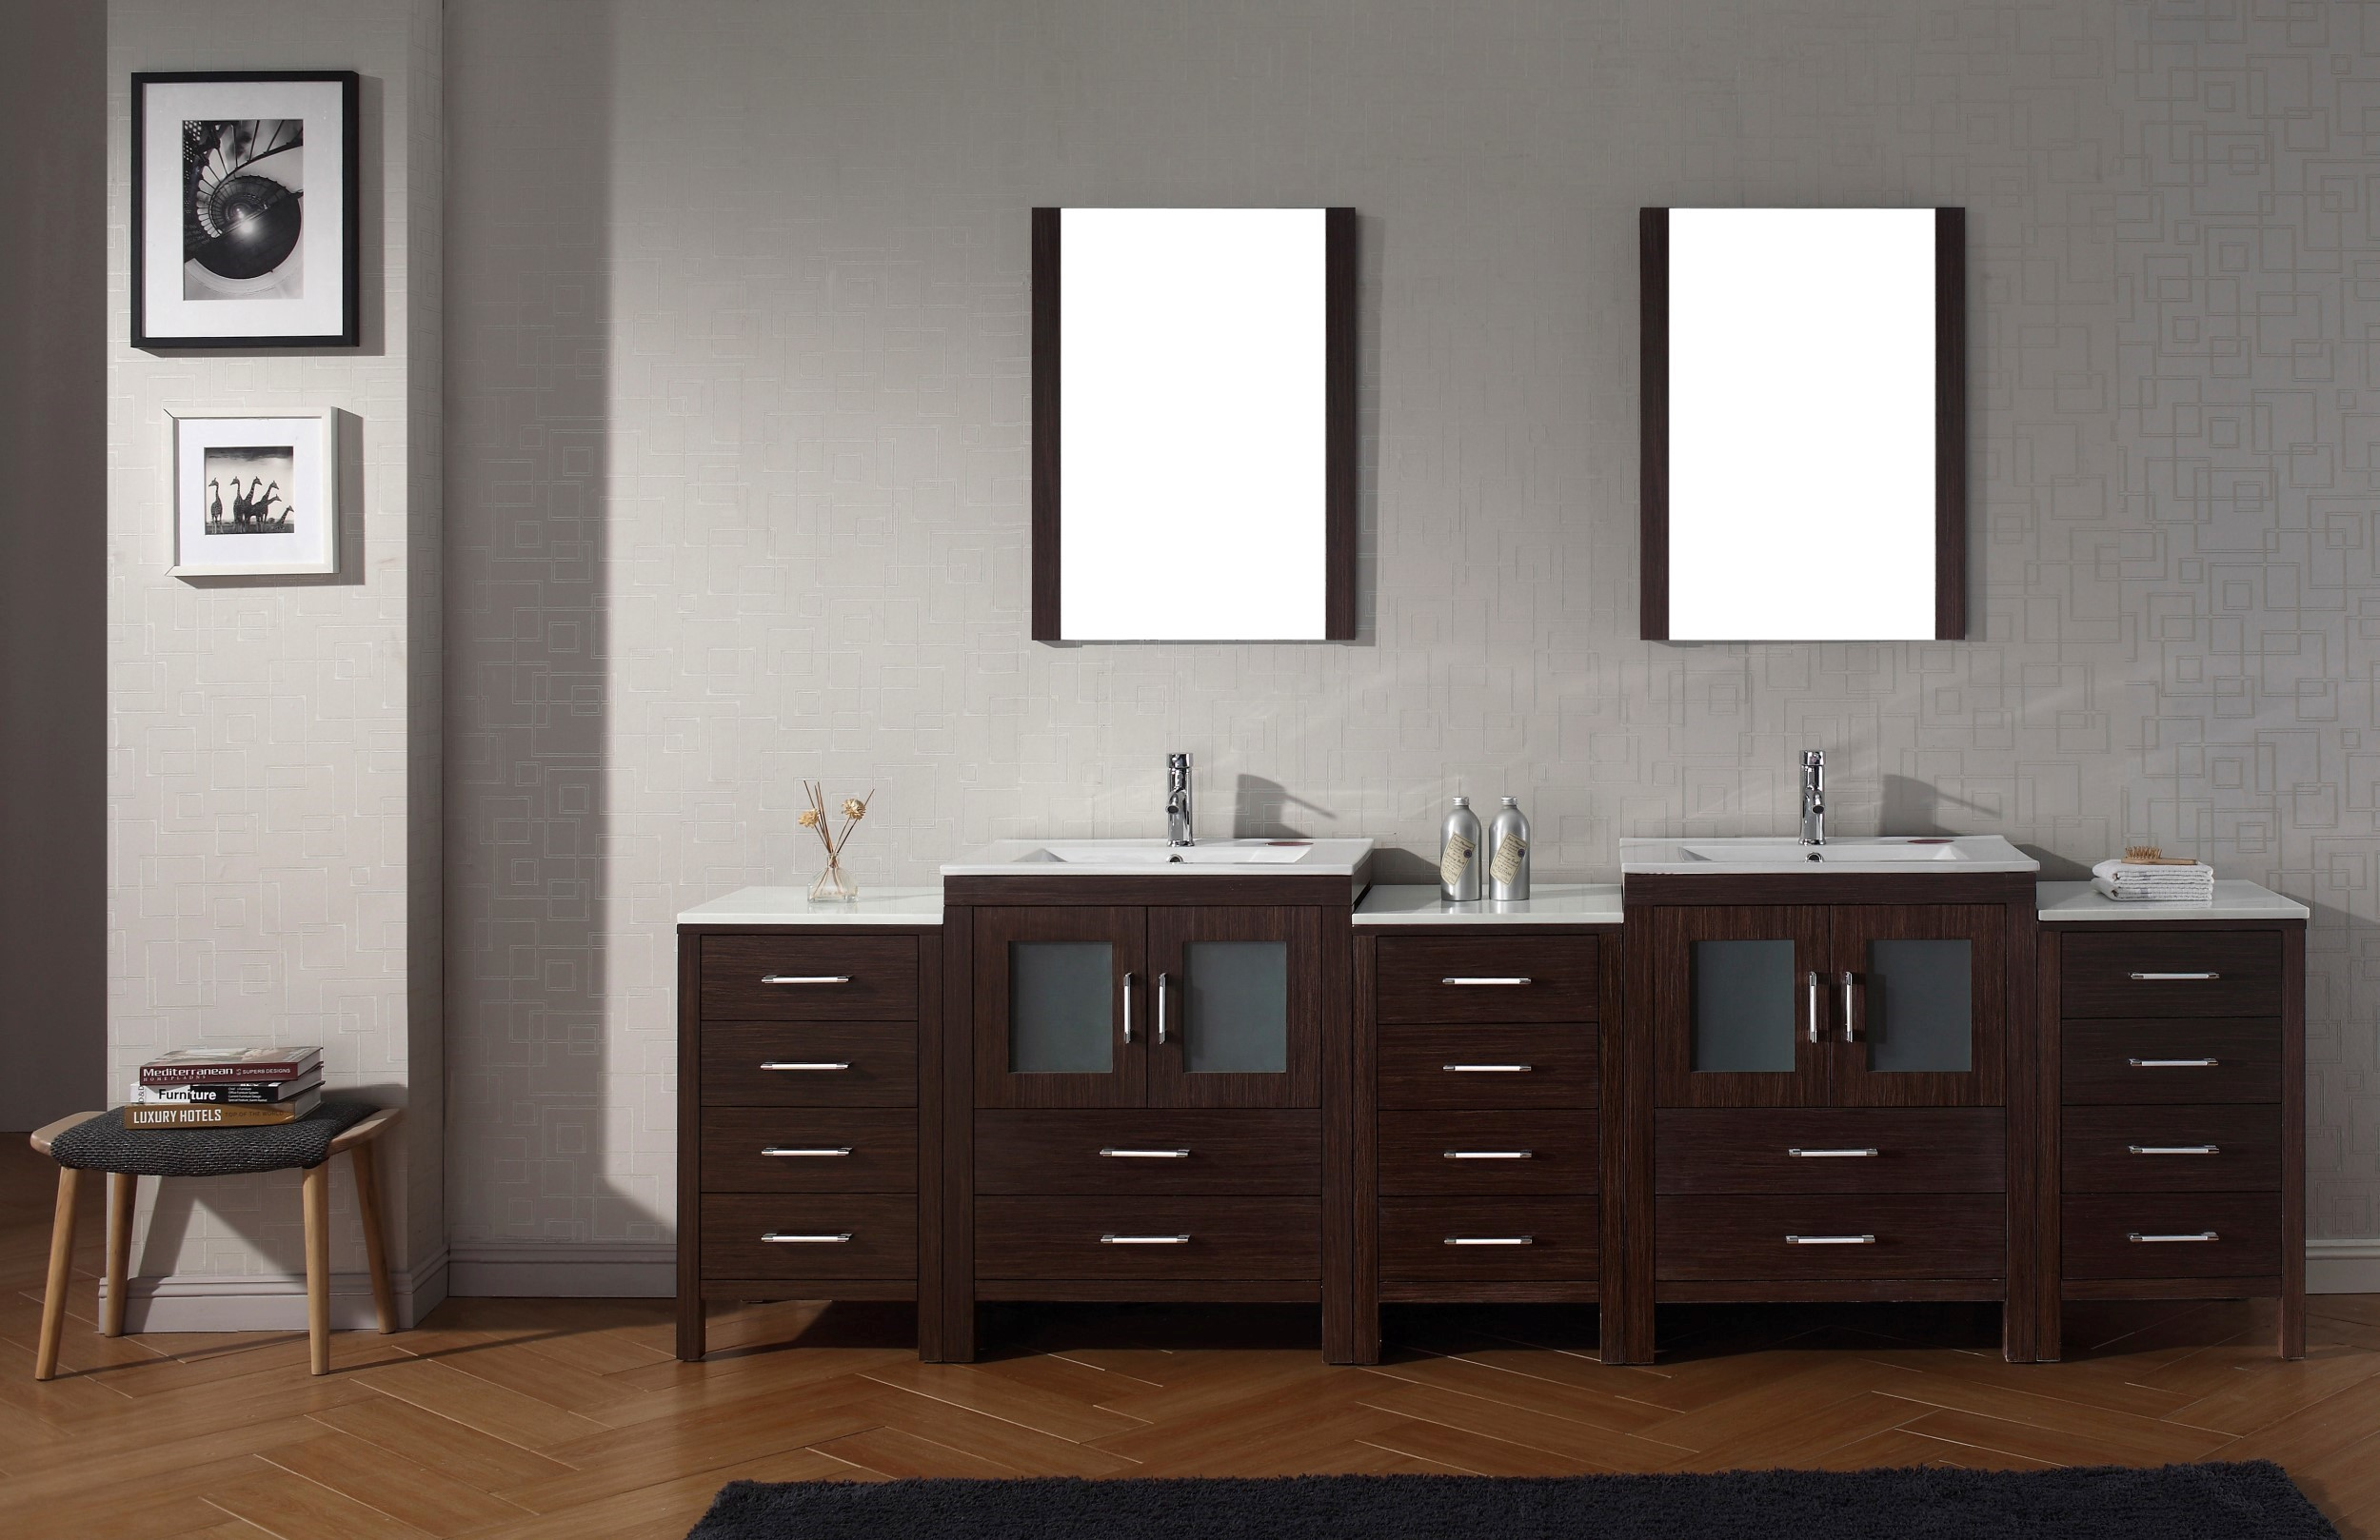 Some Tips to Buy Discount Bathroom Vanities